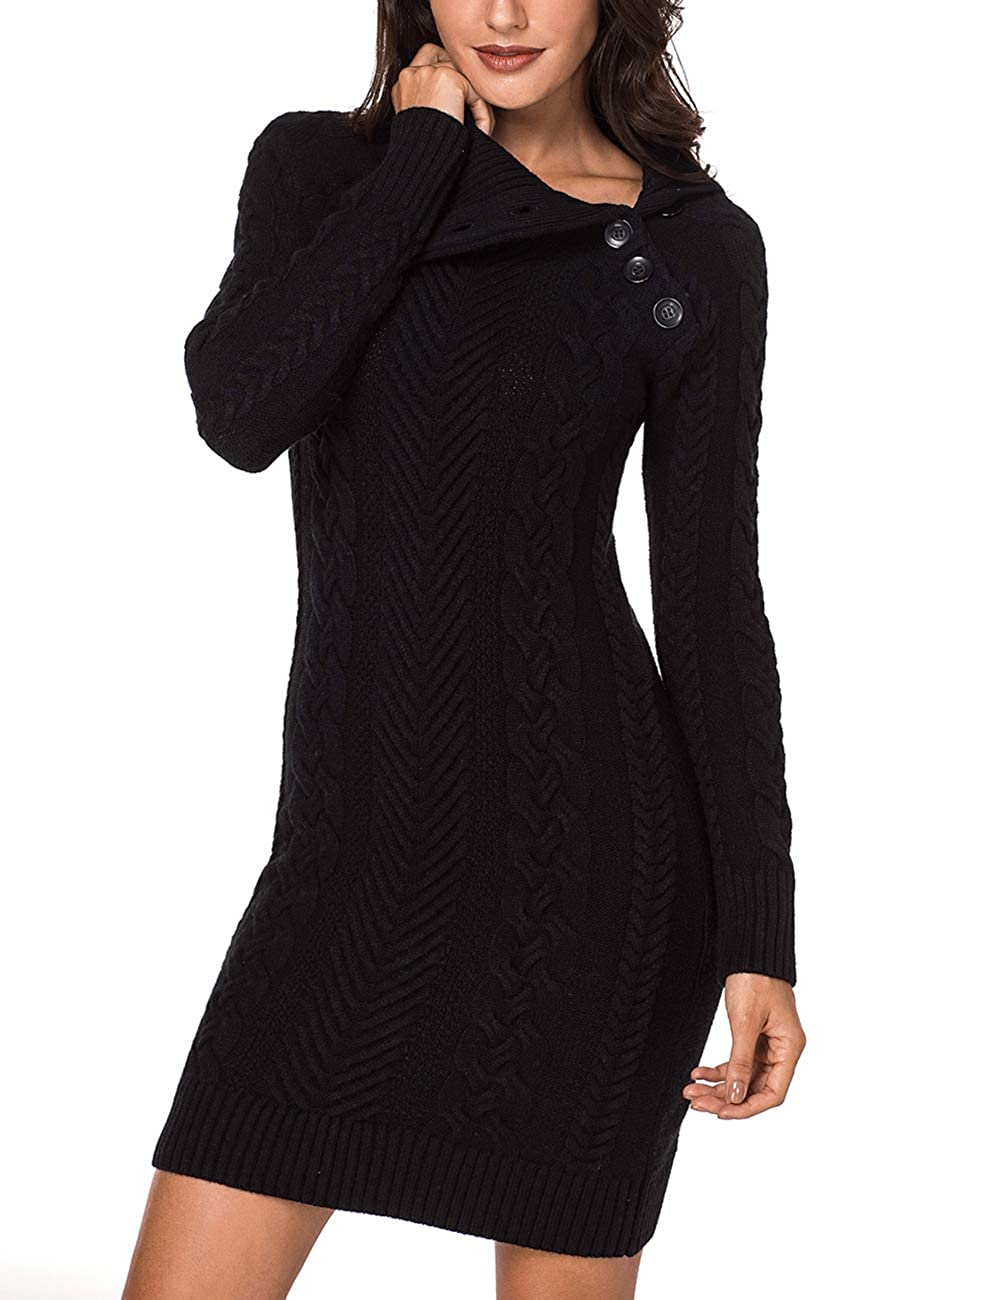 c72d2d587cf Lookbook Store Women s Asymmetric Button Collar Cable Knit Bodycon Sweater  Dress at Amazon Women s Clothing store